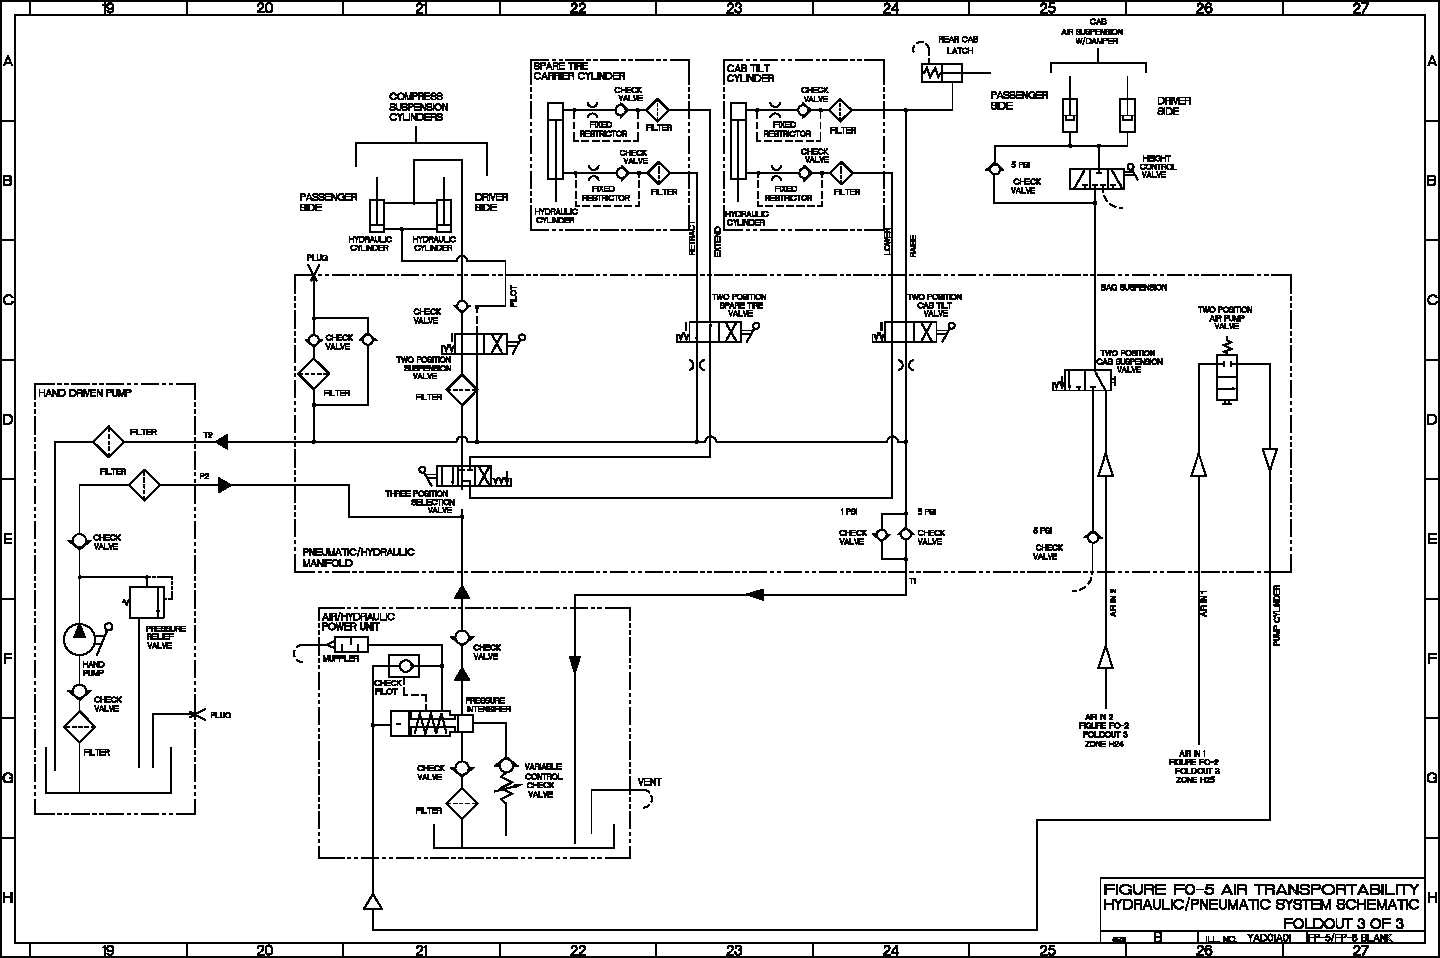 387170 My Car Left Me Stranded First Time furthermore Farmall A Wiring Harness Diagrams in addition Fuse Box New Holland Tractors moreover 8gqtc 2006 Int 9900 A C Doesn T Work High Pressure additionally Parts. on international wiring diagrams